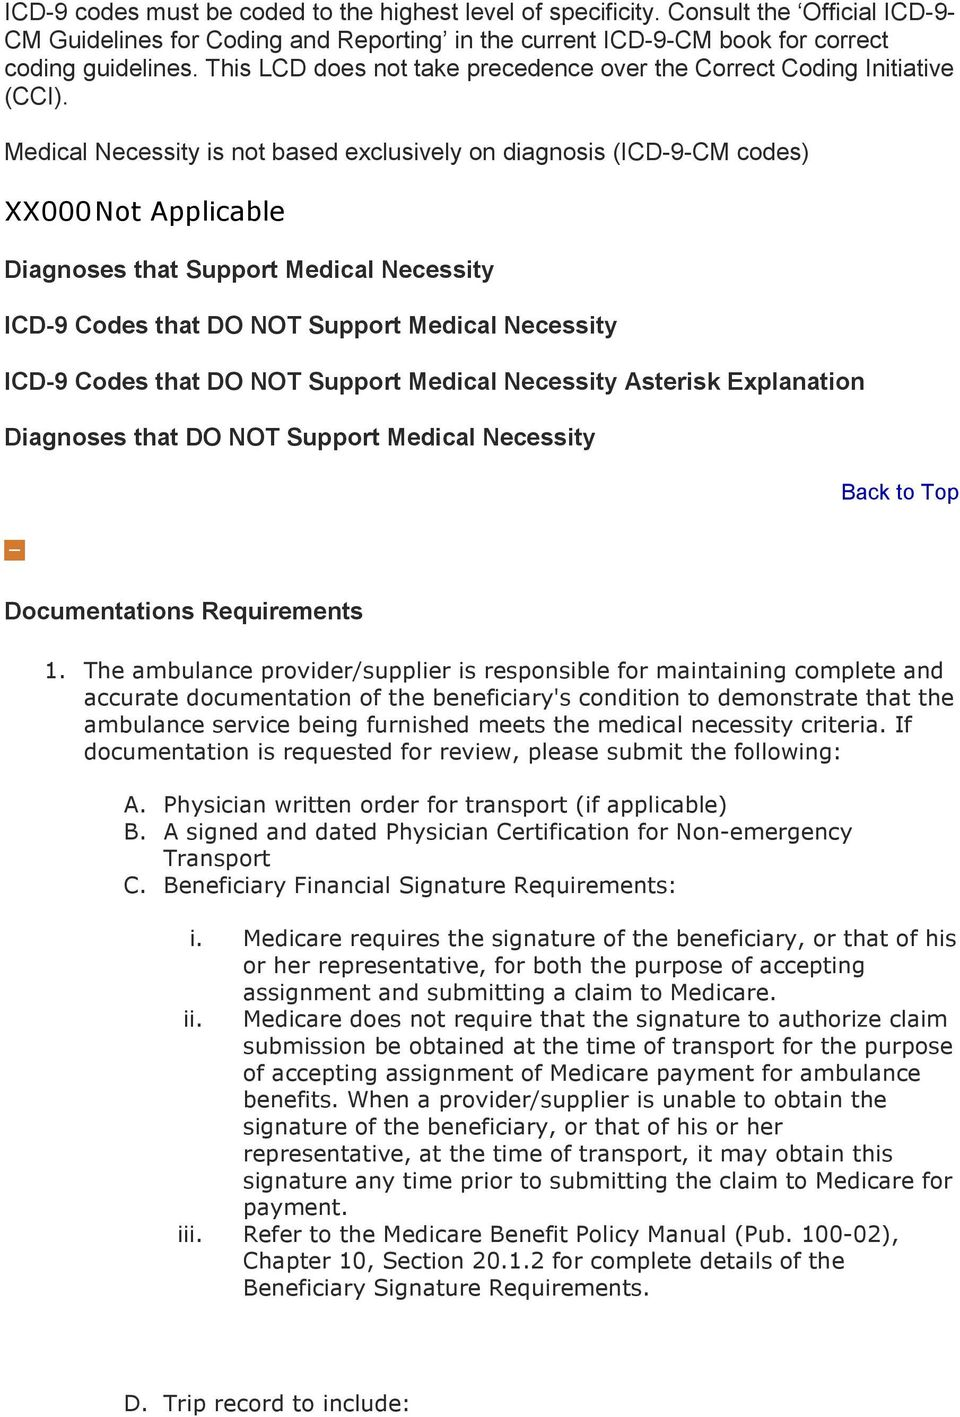 Medical Necessity is not based exclusively on diagnosis (ICD-9-CM codes) XX000 Not Applicable Diagnoses that Support Medical Necessity ICD-9 Codes that DO NOT Support Medical Necessity ICD-9 Codes